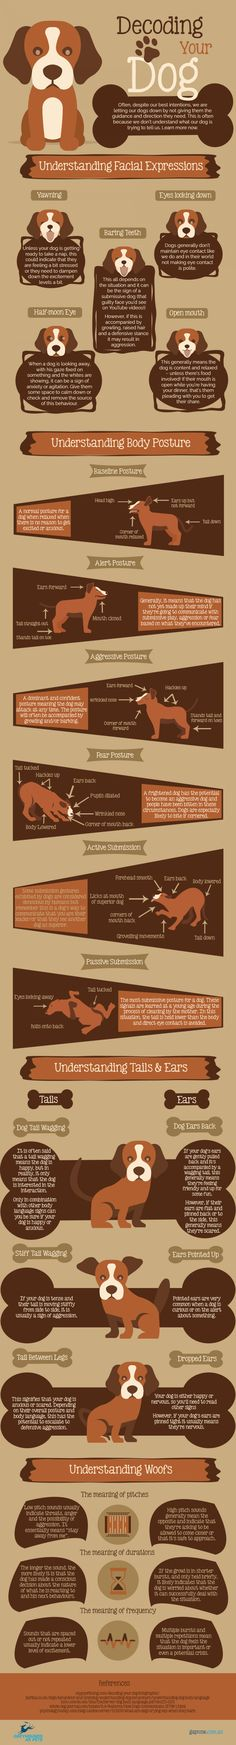 Decoding Your Dog [Infographic]